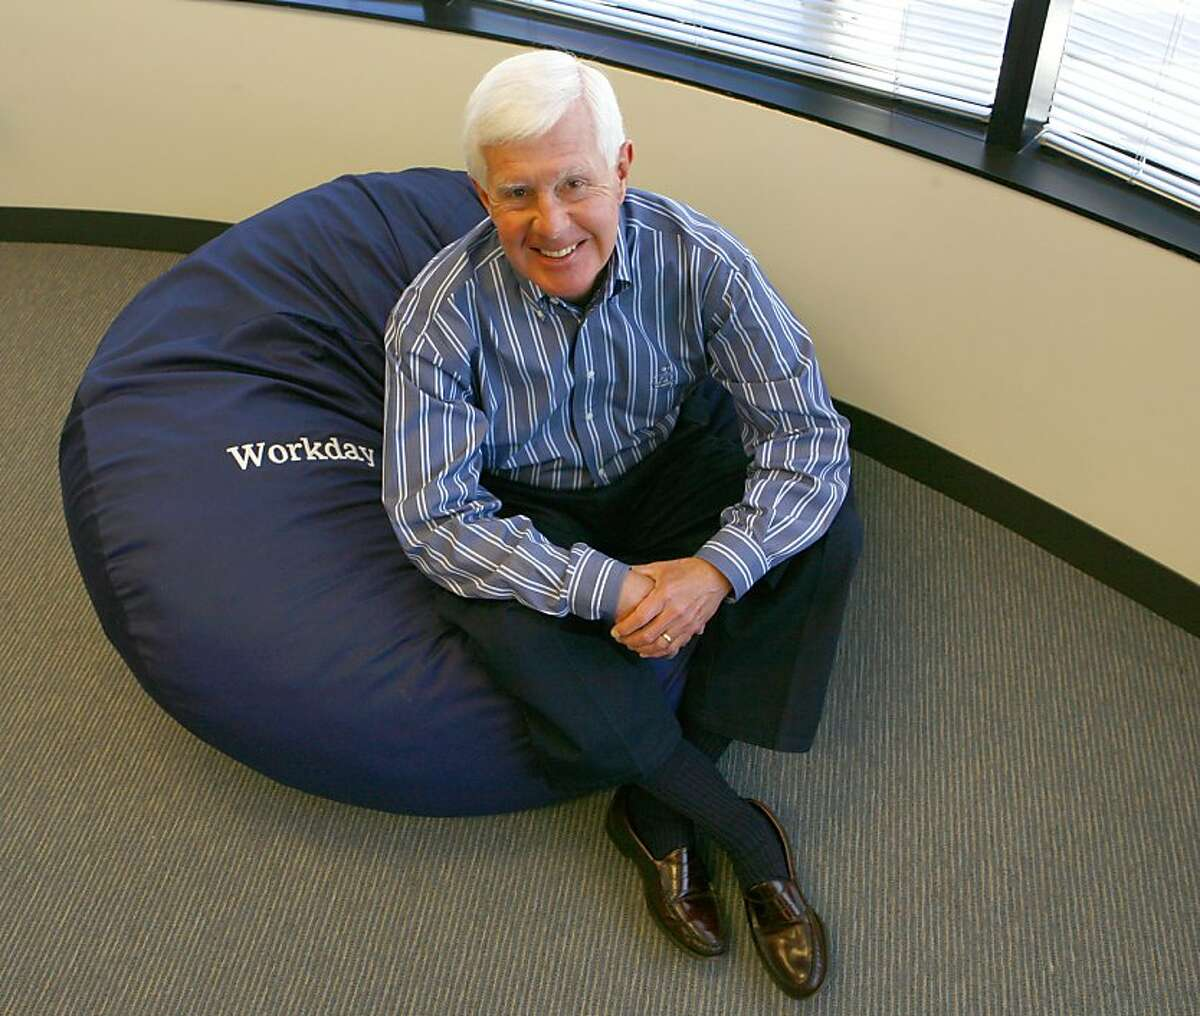 Dave Duffield poses in one of the bean bag chairs set up in the company's game room.After fighting the hostile takeover of his company, PeopleSoft, Dave Duffield founded a new startup in Walnut Creek with 107 employees called Workday. And that startup is taking bold aim at his old nemesis, Oracle's Larry Ellison, by selling software that lets companies manage business tasks via the Internet instead of installing costly programs on company computers. Photo by Michael Maloney / San Francisco Chronicle Photo taken on 6/8/07 in Walnut Creek, CA *** Ran on: 06-17-2007 David Duffield relaxes in a beanbag chair in the game room at Workday, where the congenial atmosphere is a reminder of his days at PeopleSoft. Ran on: 06-17-2007 David Duffield relaxes in a beanbag chair in the game room at Workday, where the congenial atmosphere is a reminder of his days at PeopleSoft. Ran on: 12-04-2008 Entrepreneur David Duffield serves as Workday Inc. CEO and chief consumer advocate.